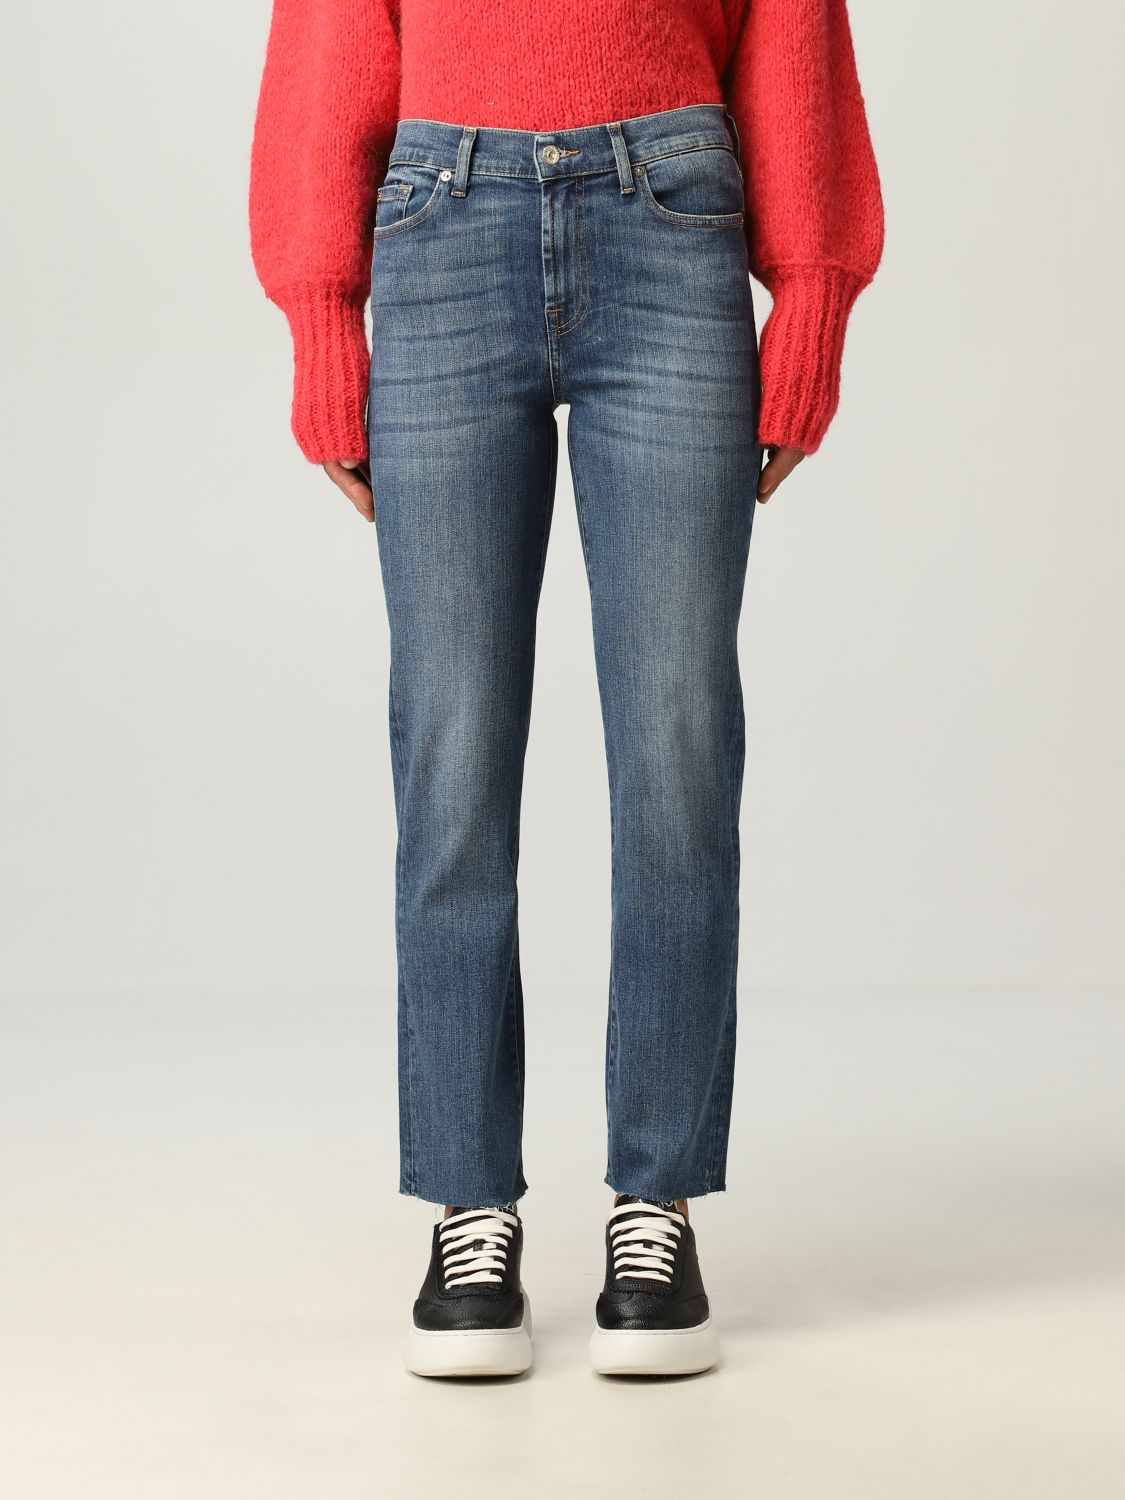 Jeans 7 For All Mankind: Jeans donna 7 For All Mankind blue 1